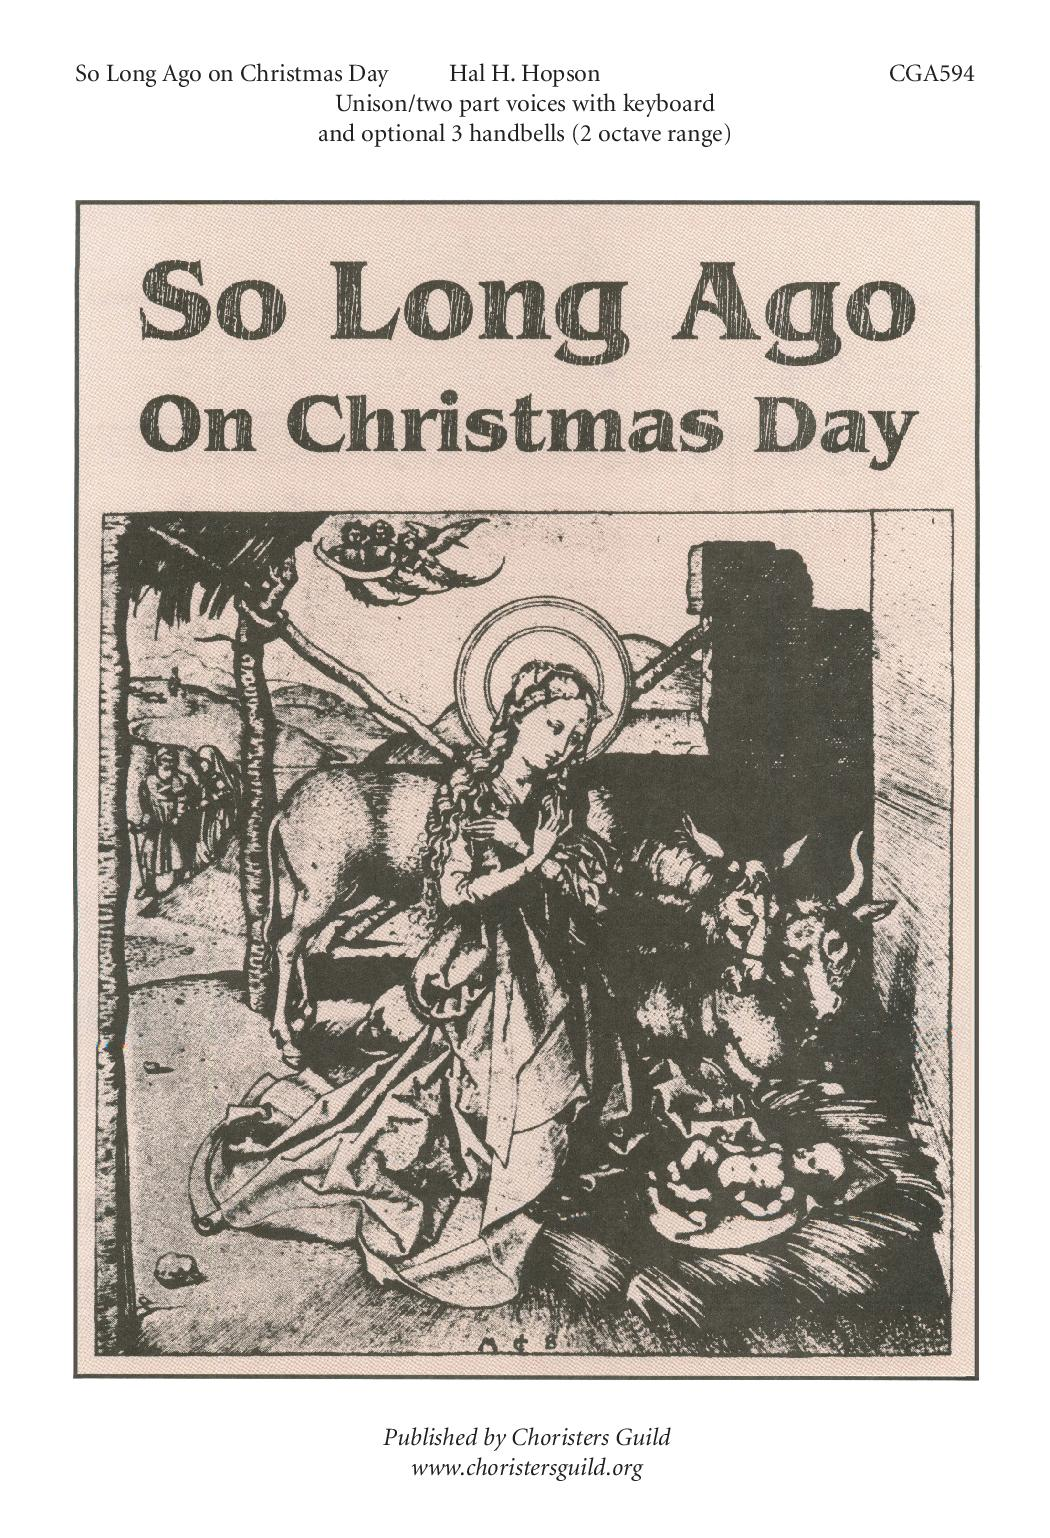 So Long Ago on Christmas Day